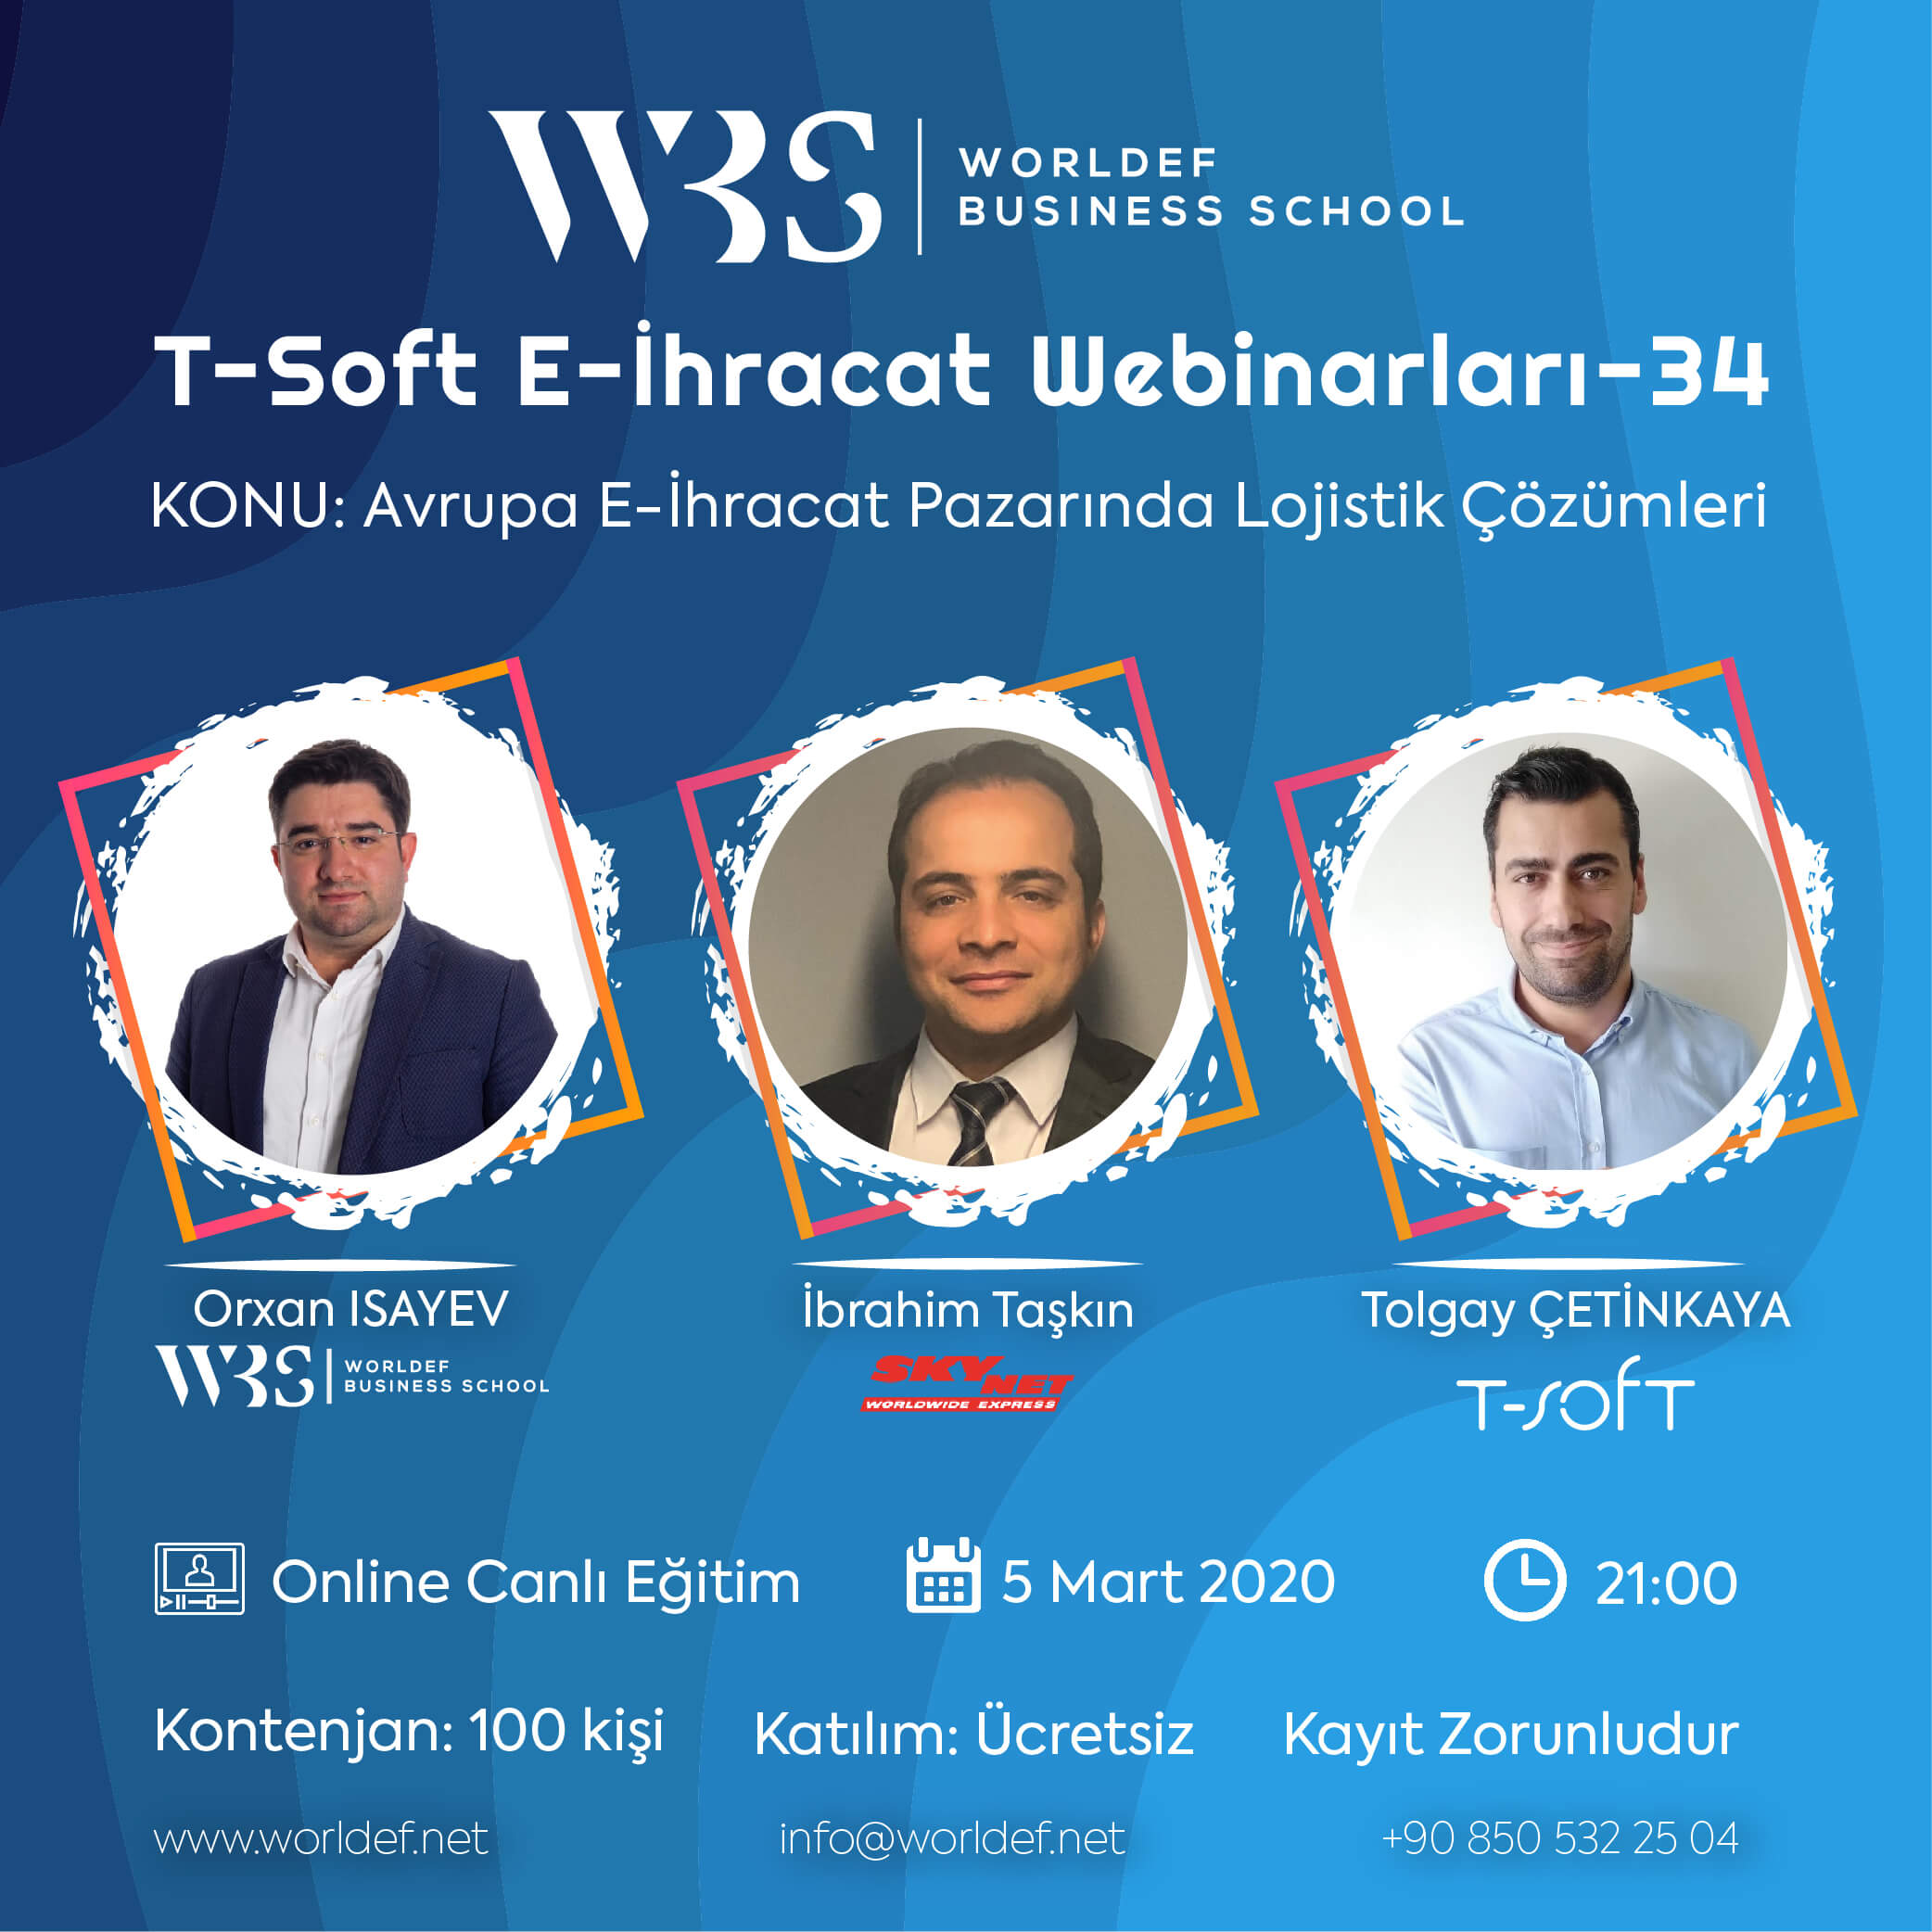 Ibrahim Taşkın from SkyNet will be our guest during the week of WORLDEF BUSINESS SCHOOL (WBS) Cross-Border E-Commerce Webinars!